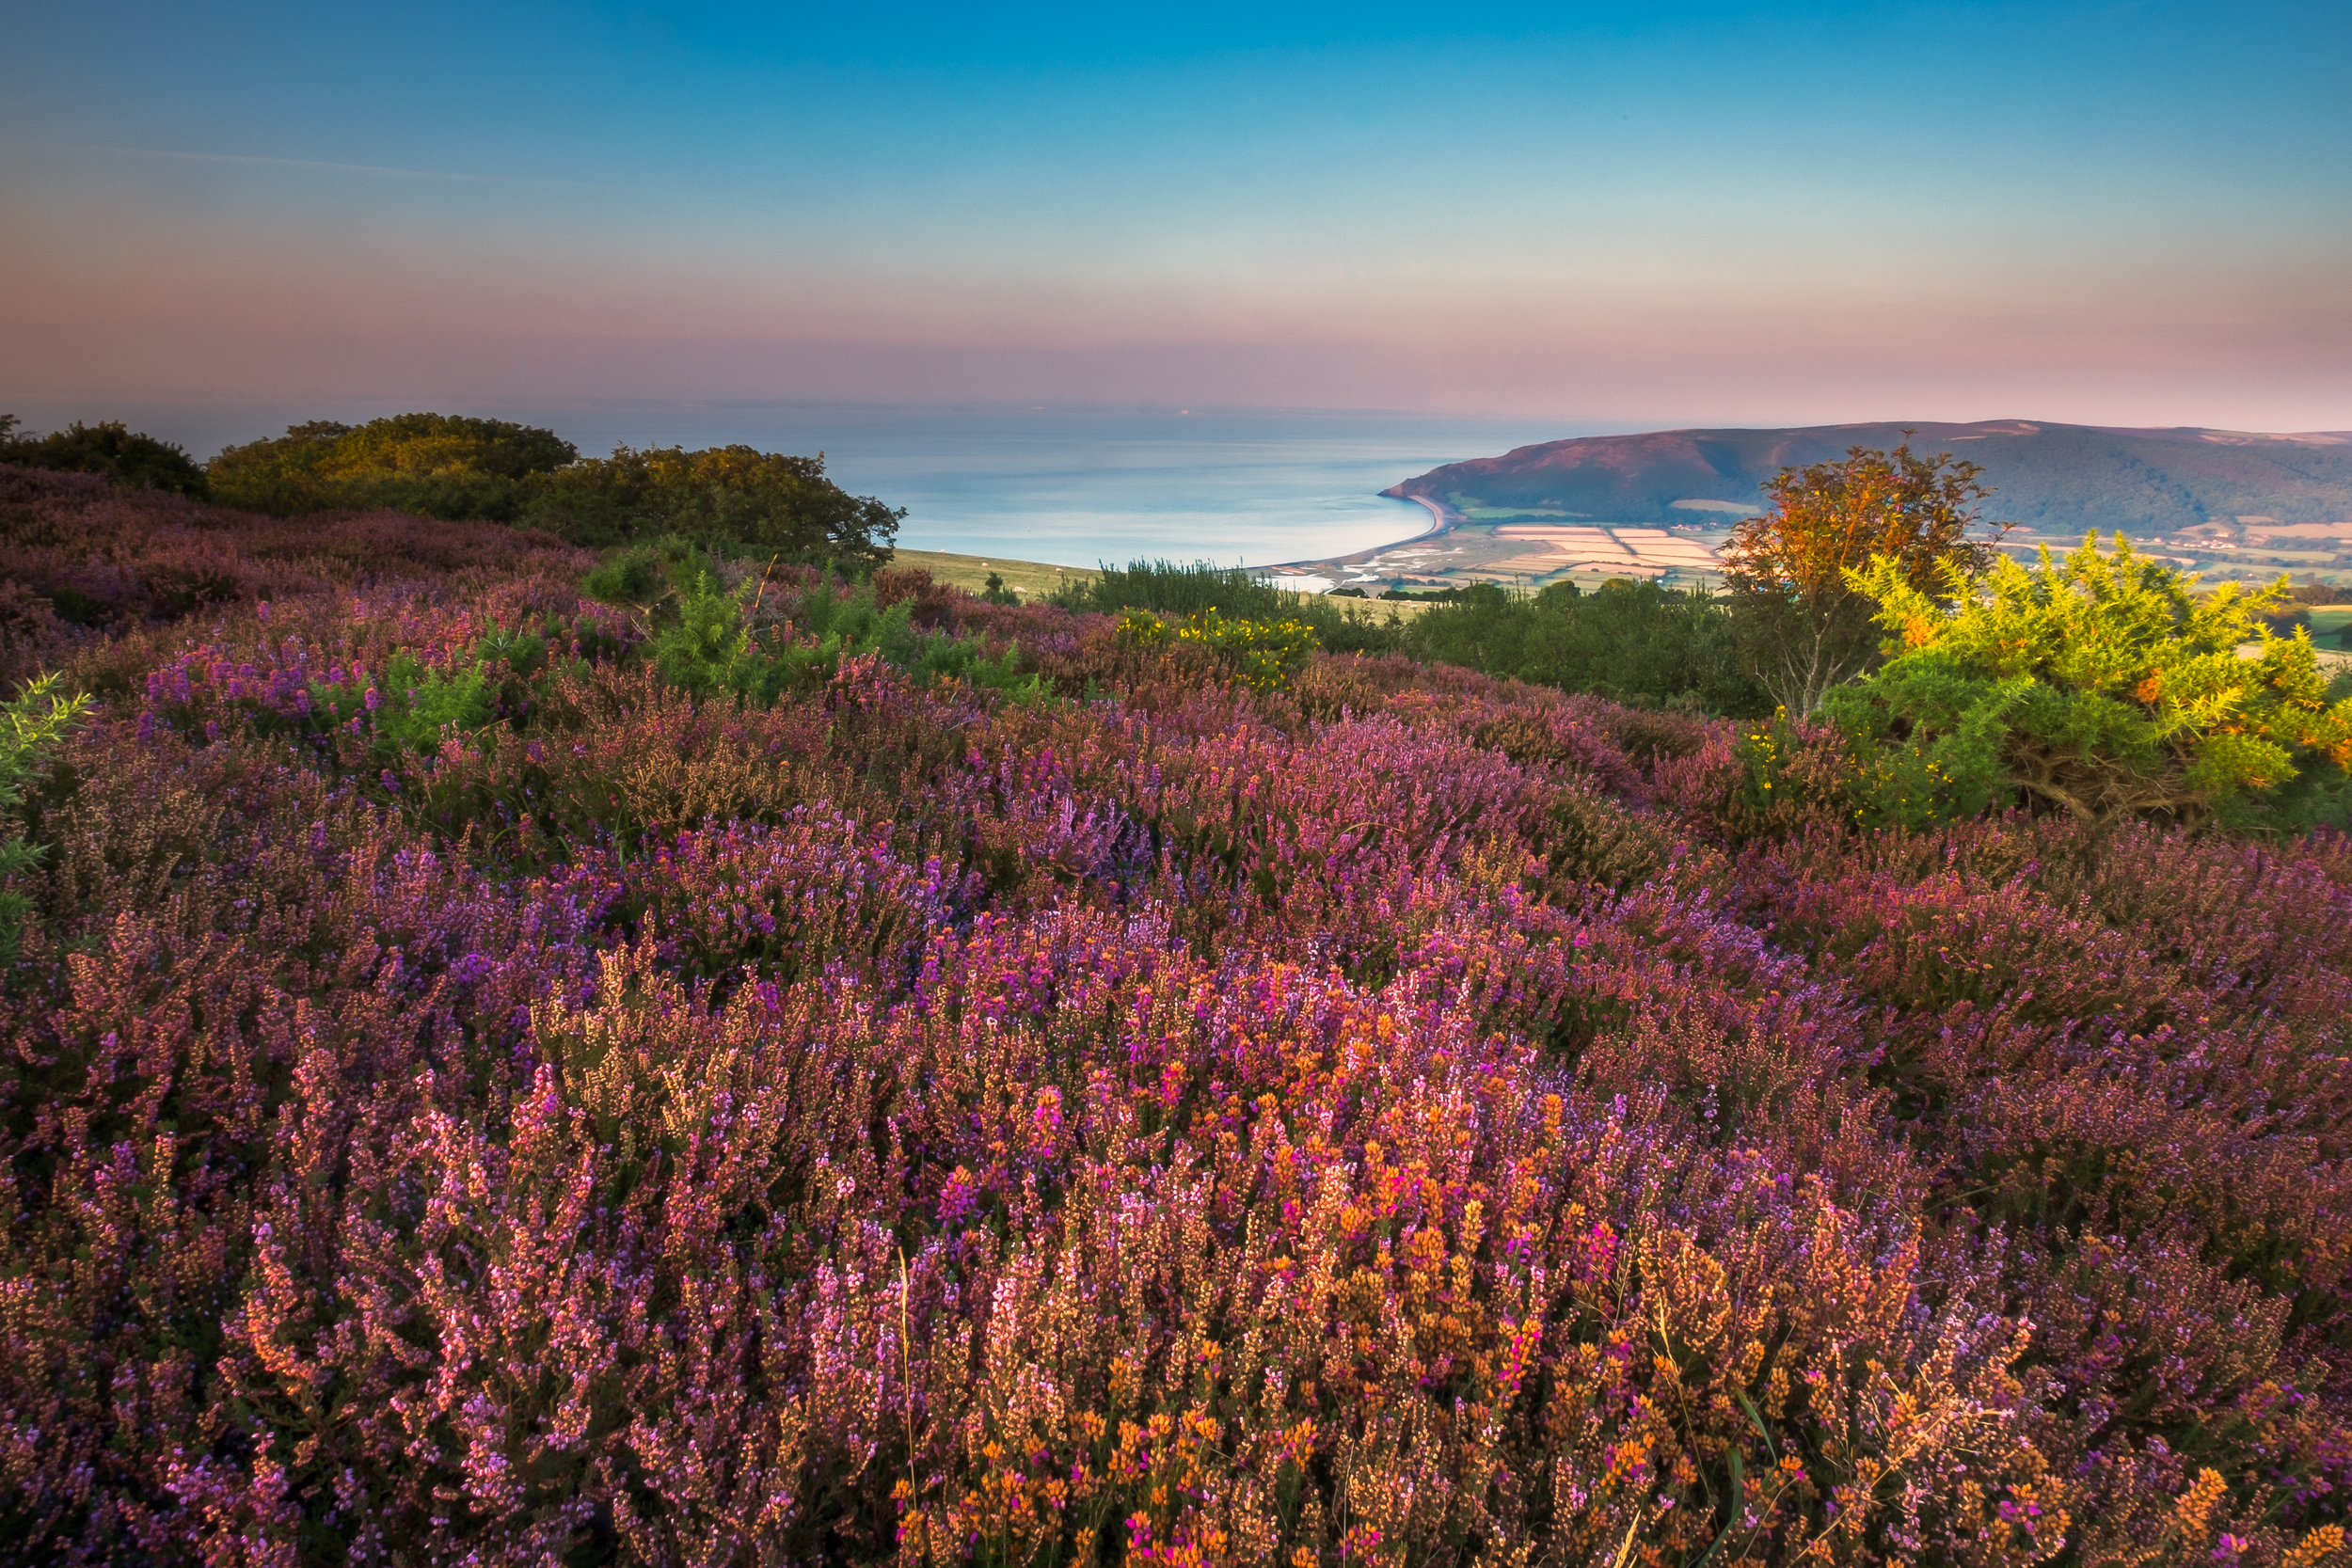 Sunset or Porlock Hill looking out towards the sea. Fujifilm X-T1 + 10-24mm @ f/22. 1/3.